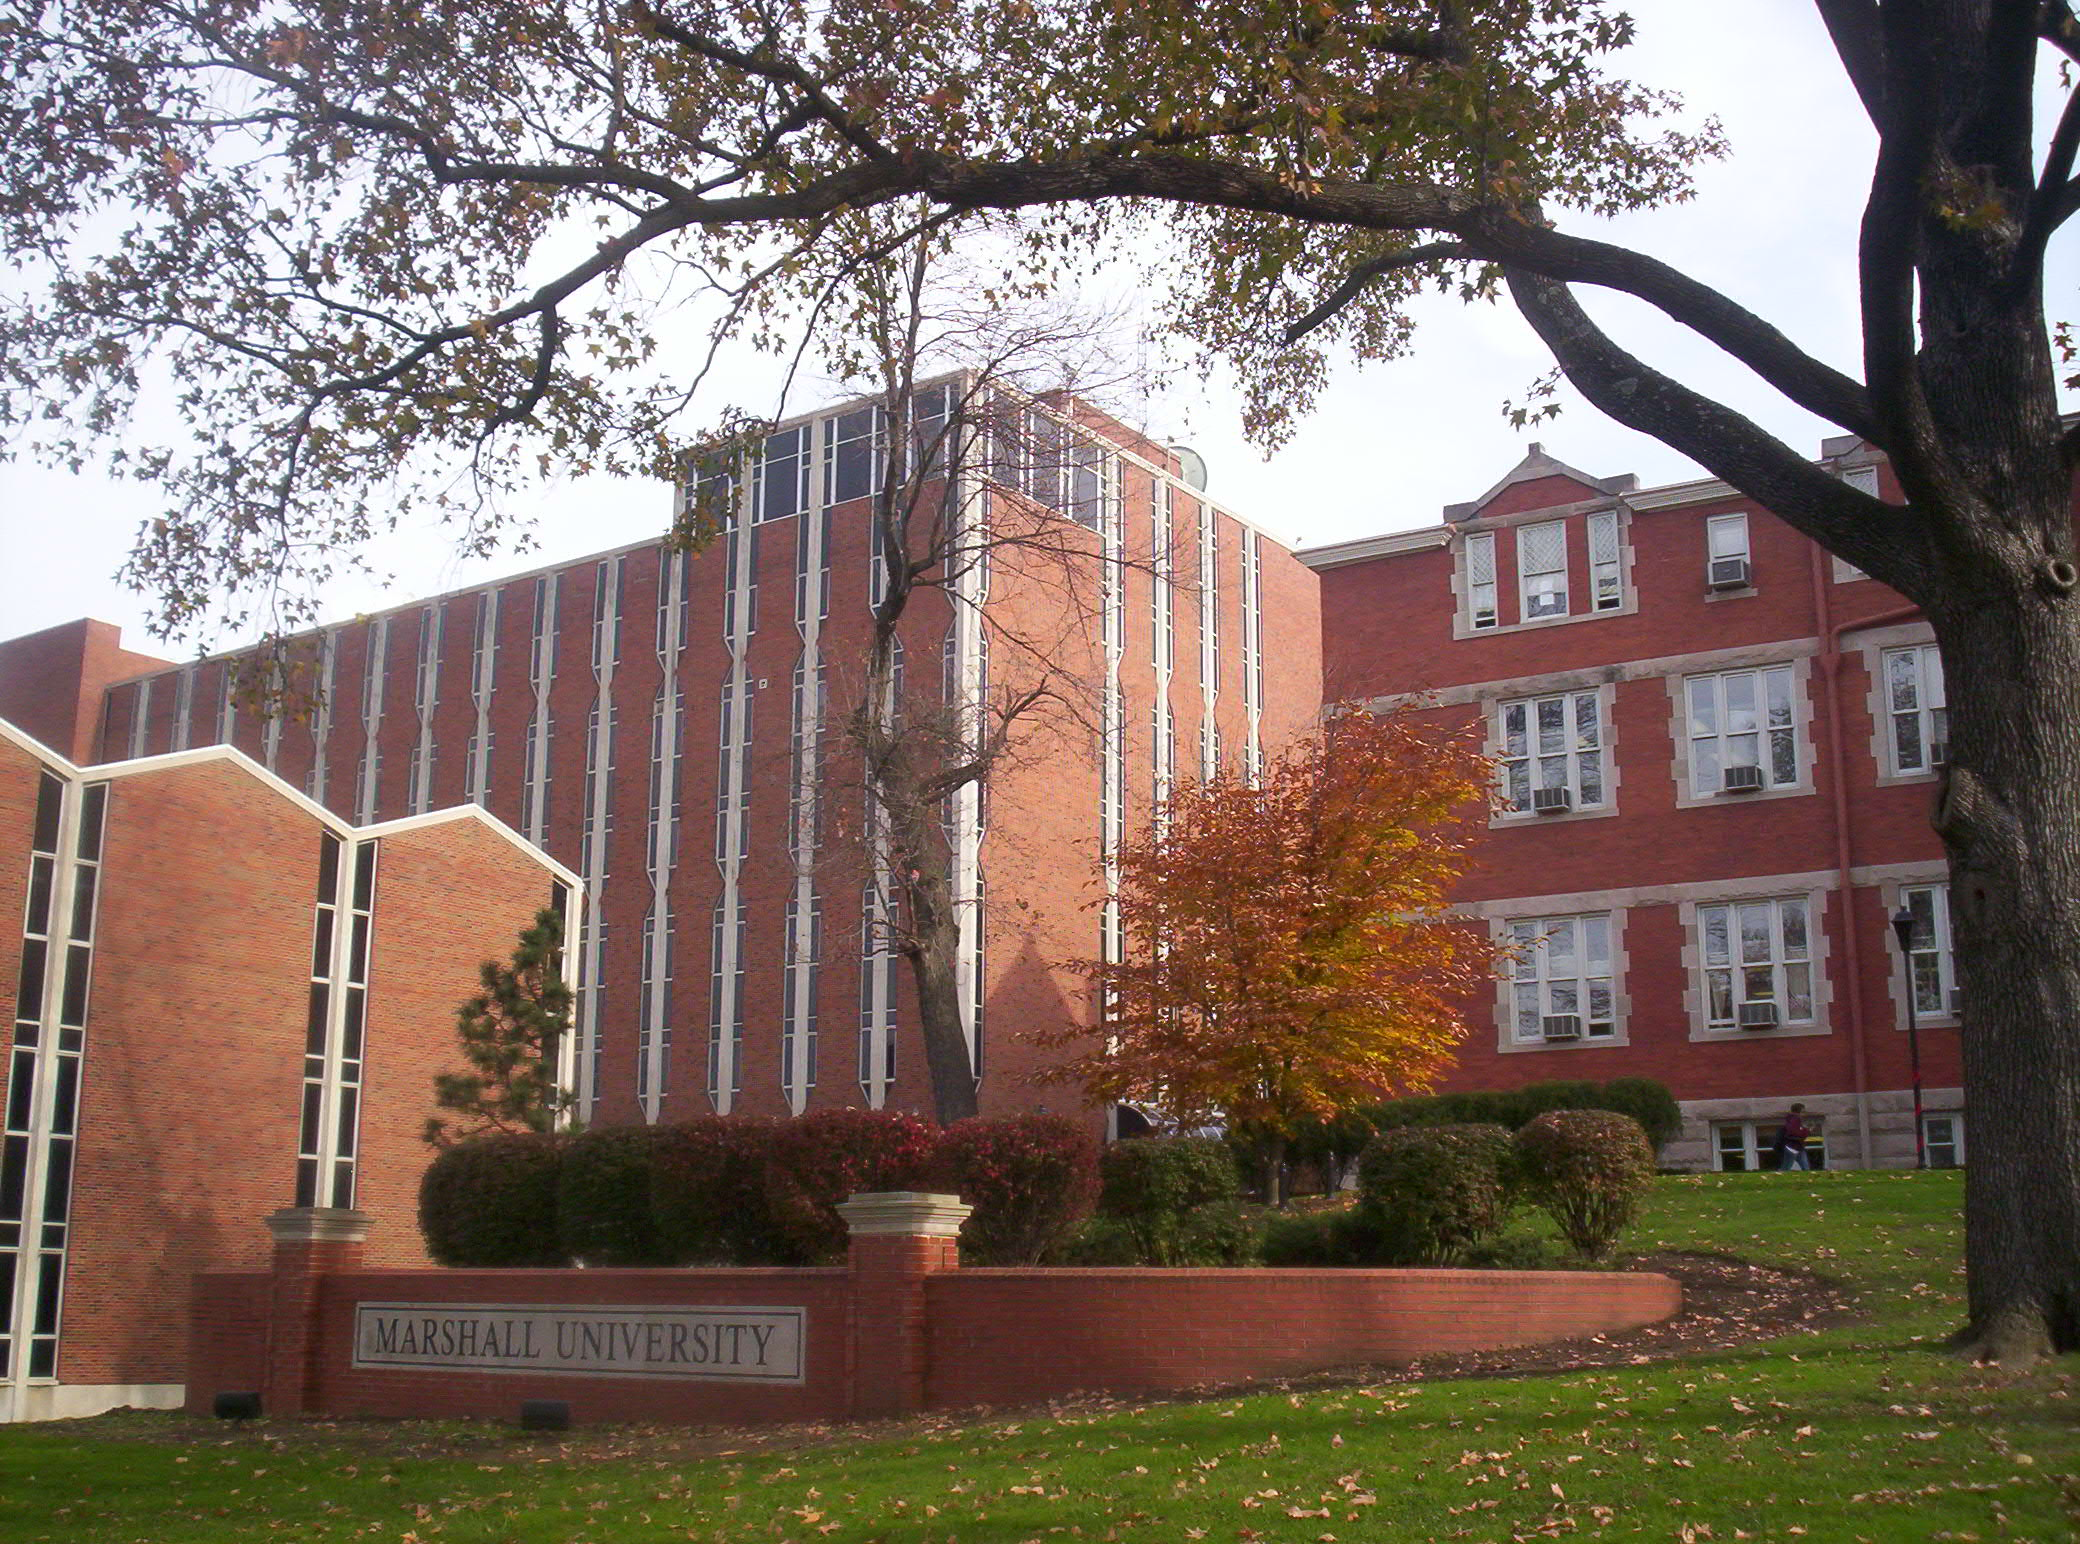 The Smith Hall Academic Complex consists of Stewart Harold Smith Hall, Evelyn Hollberg Smith Music Hall, and the Communications Building.